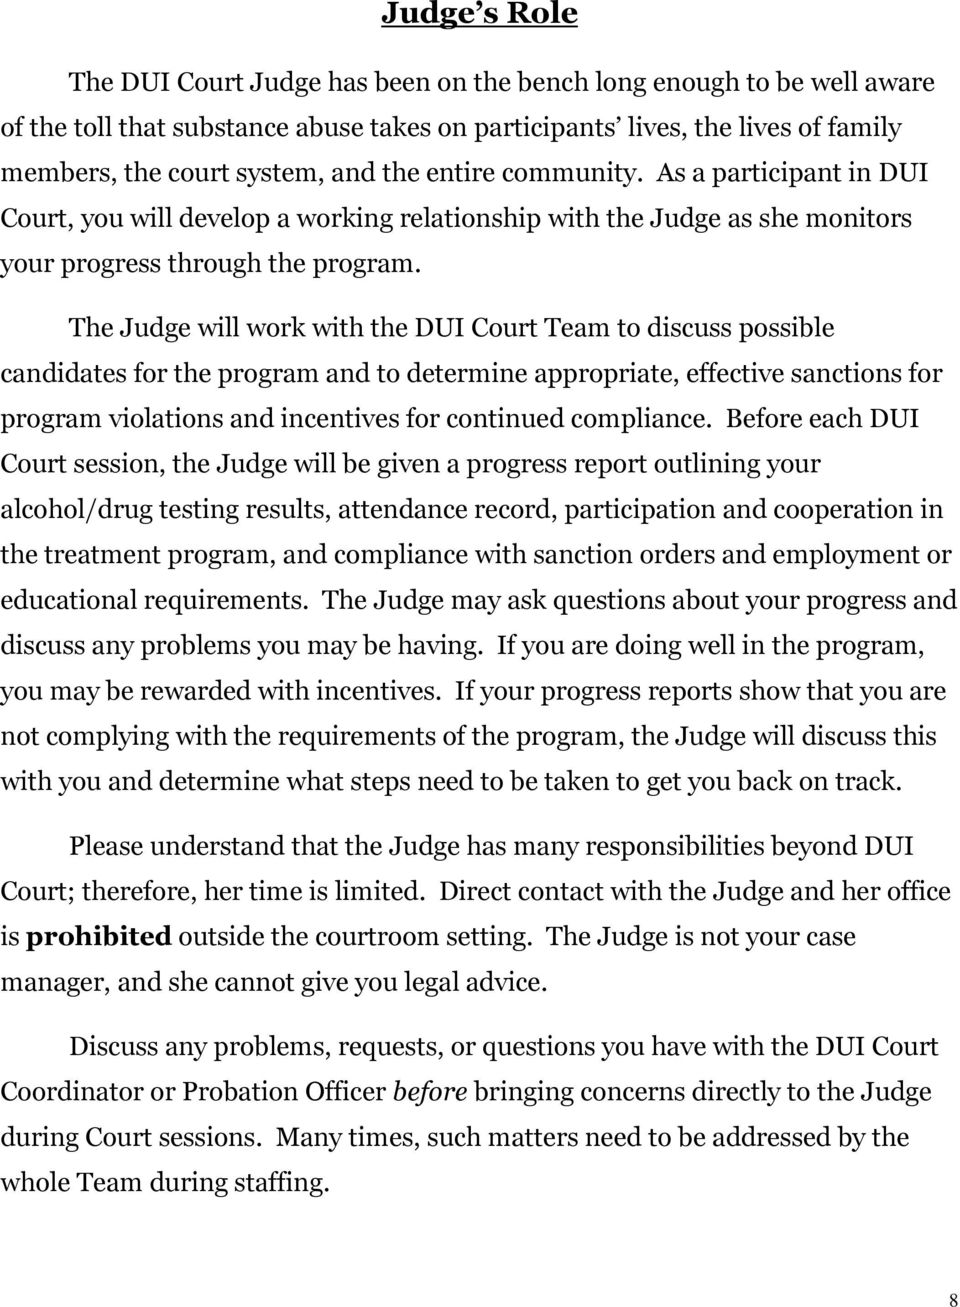 The Judge will work with the DUI Court Team to discuss possible candidates for the program and to determine appropriate, effective sanctions for program violations and incentives for continued